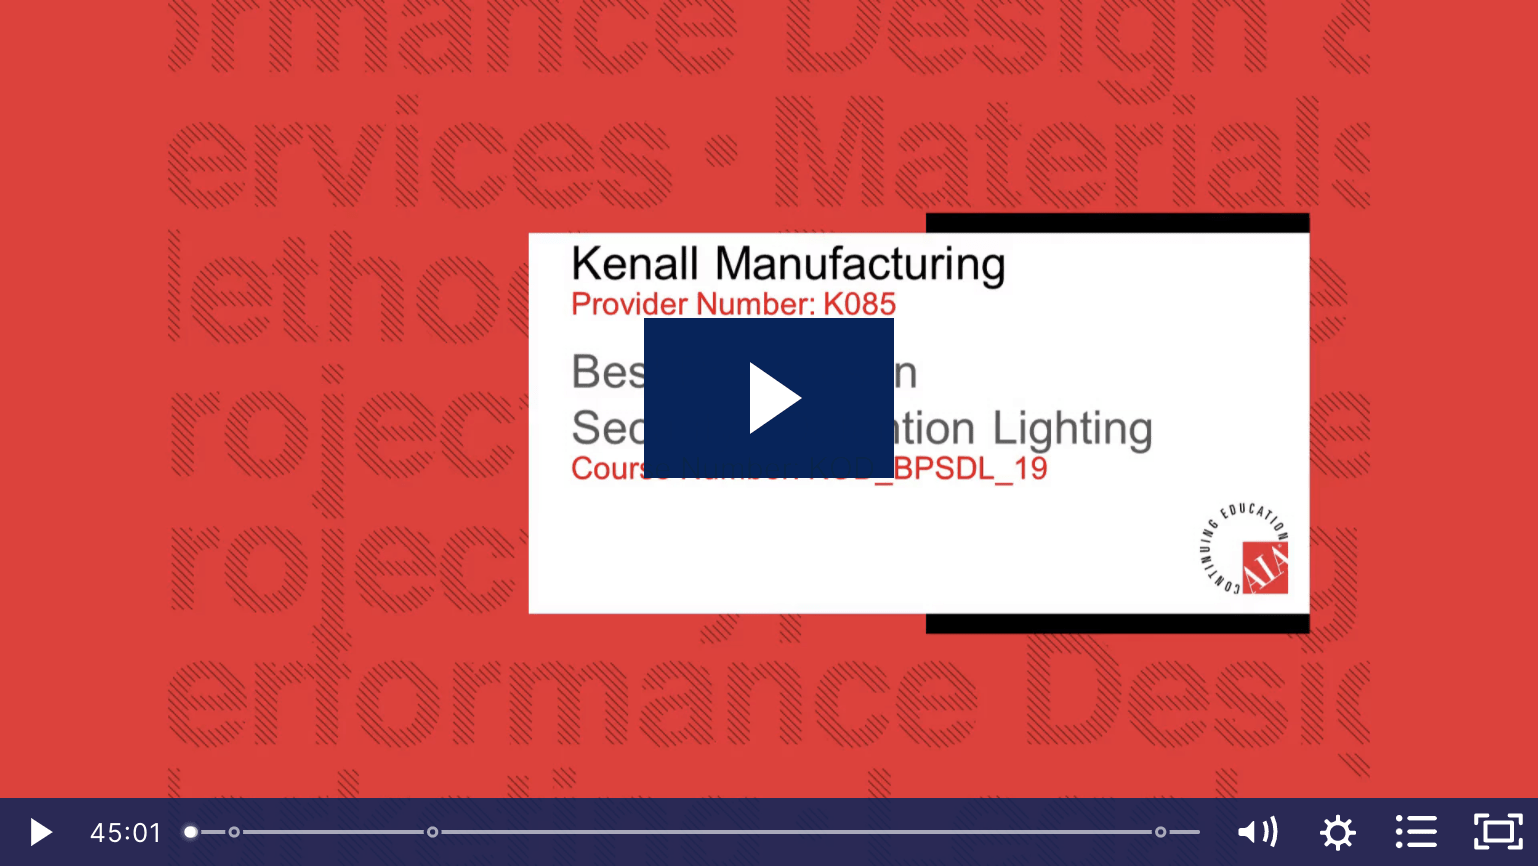 Kenall: Best Practices in Security/Detention Lighting